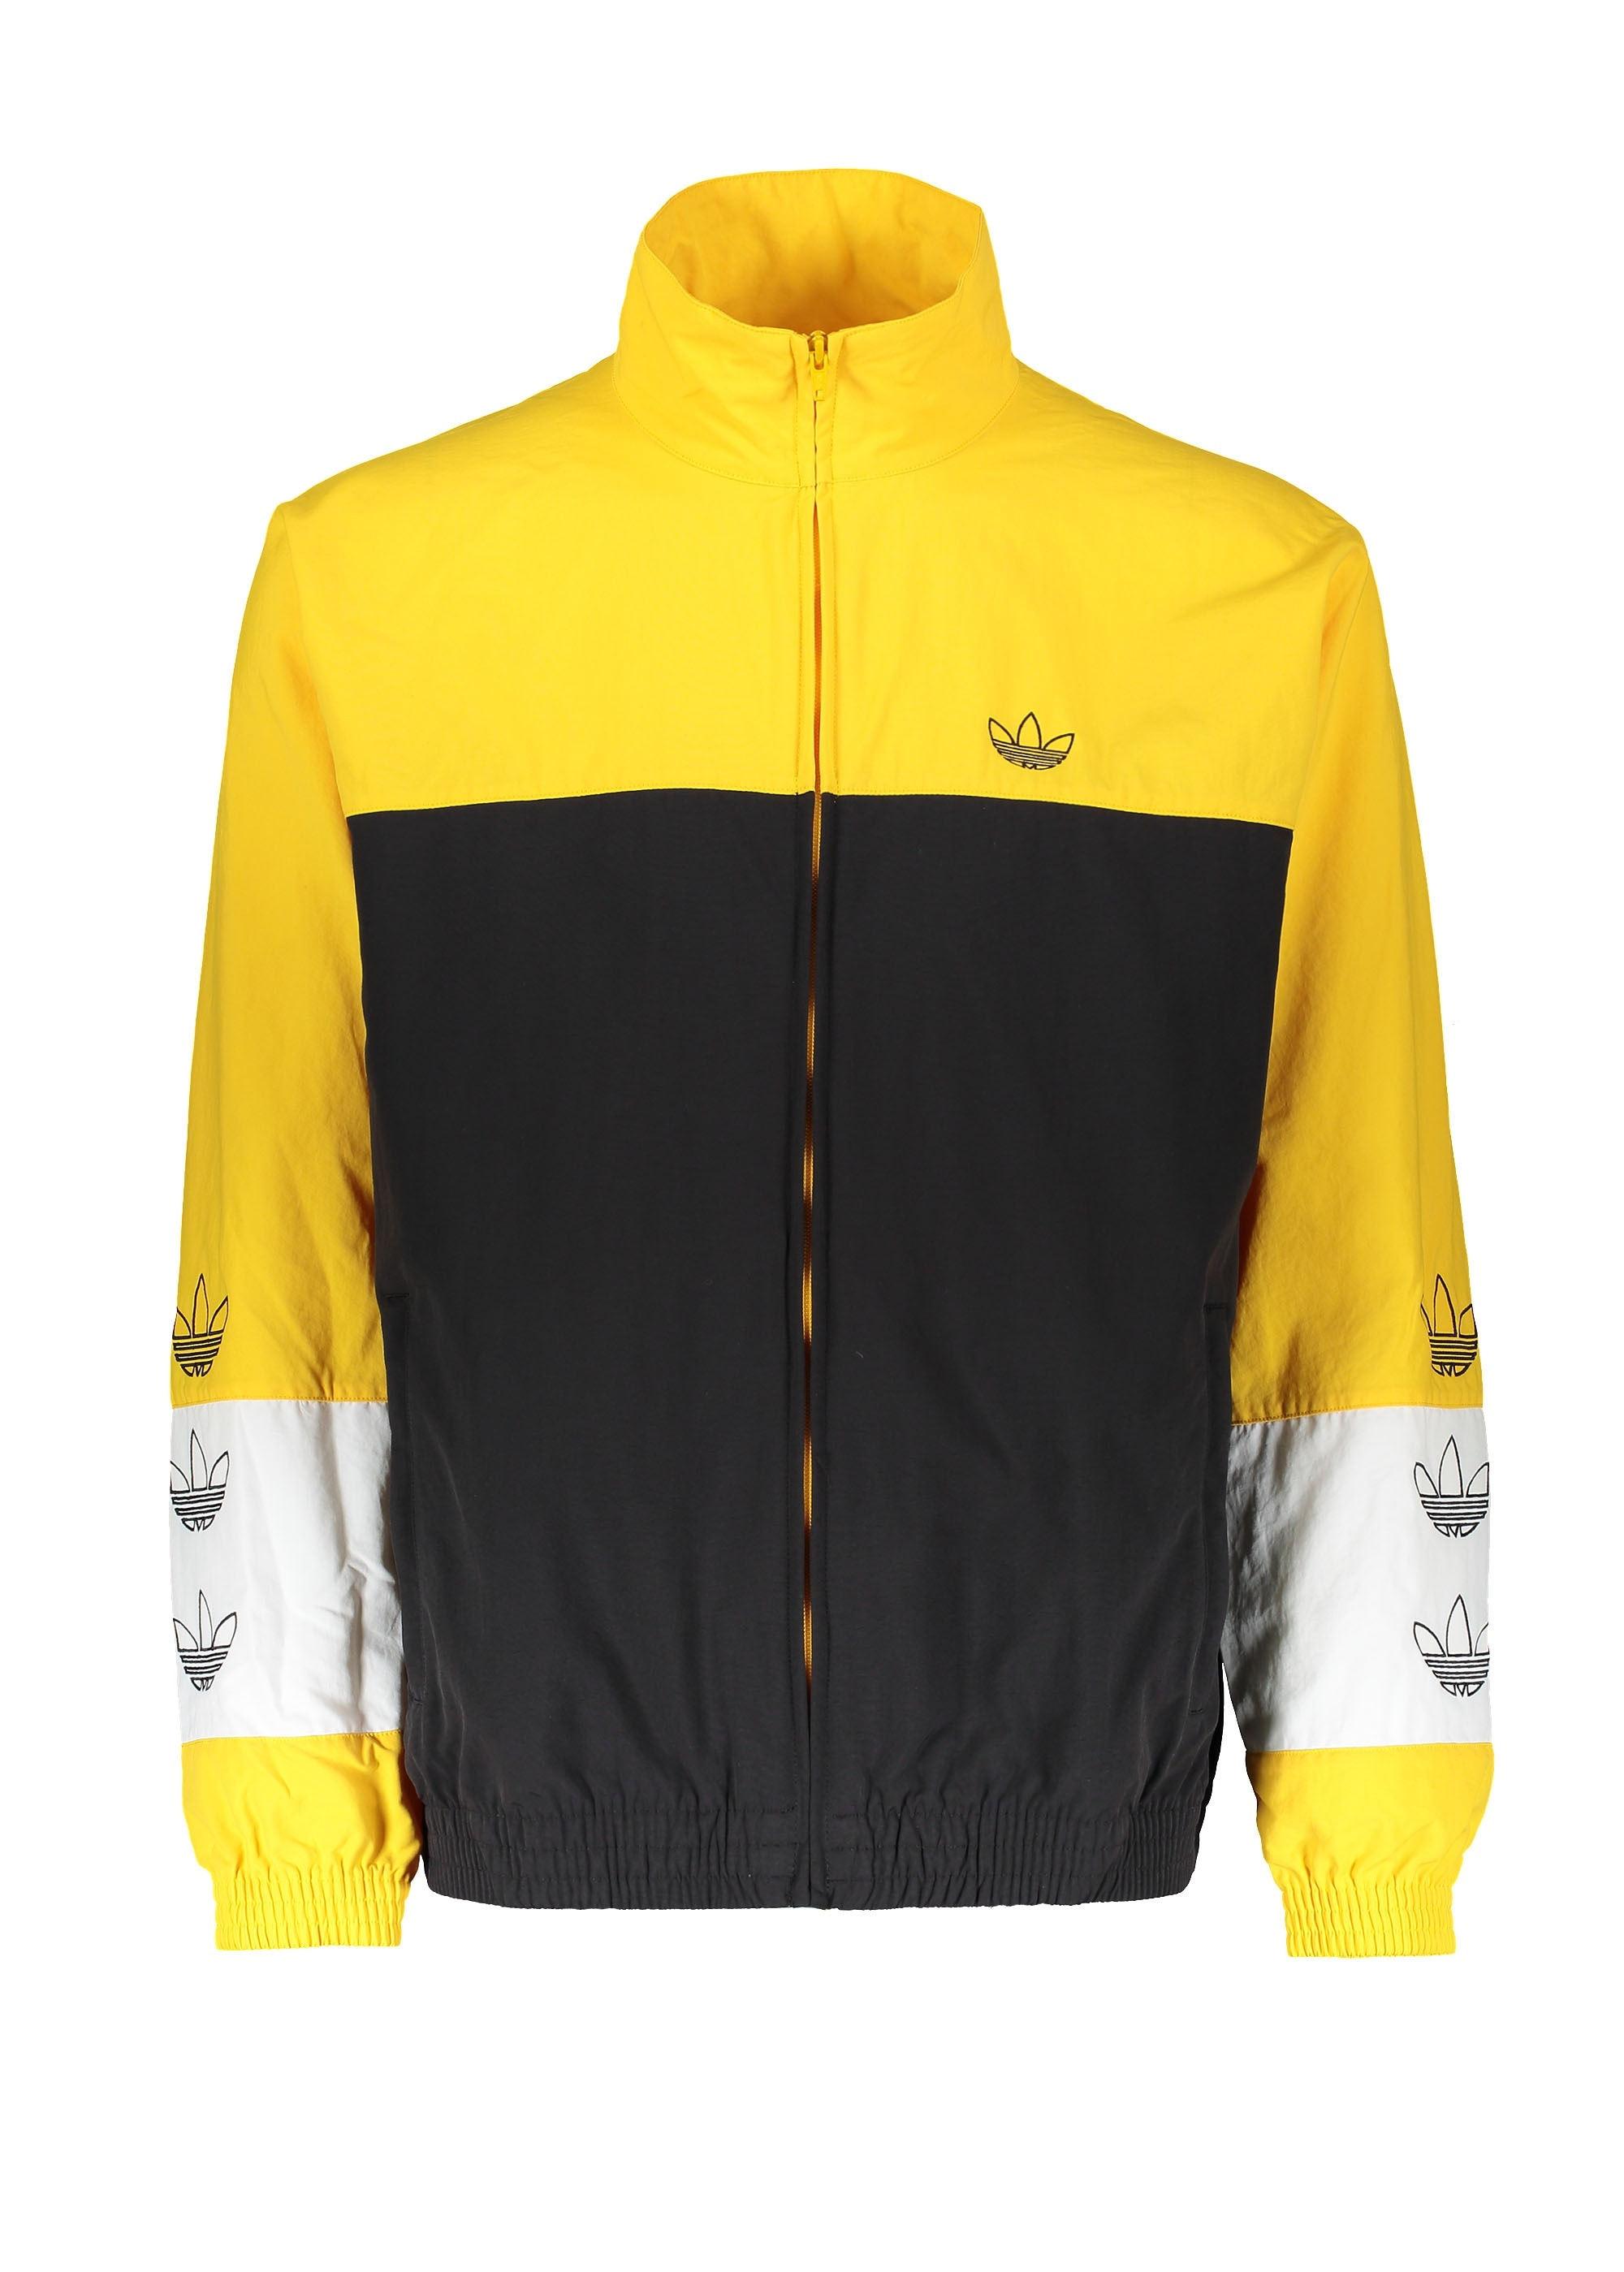 lowest price d1f3a 89873 Tourney Warm Up Jacket - Black  Yellow